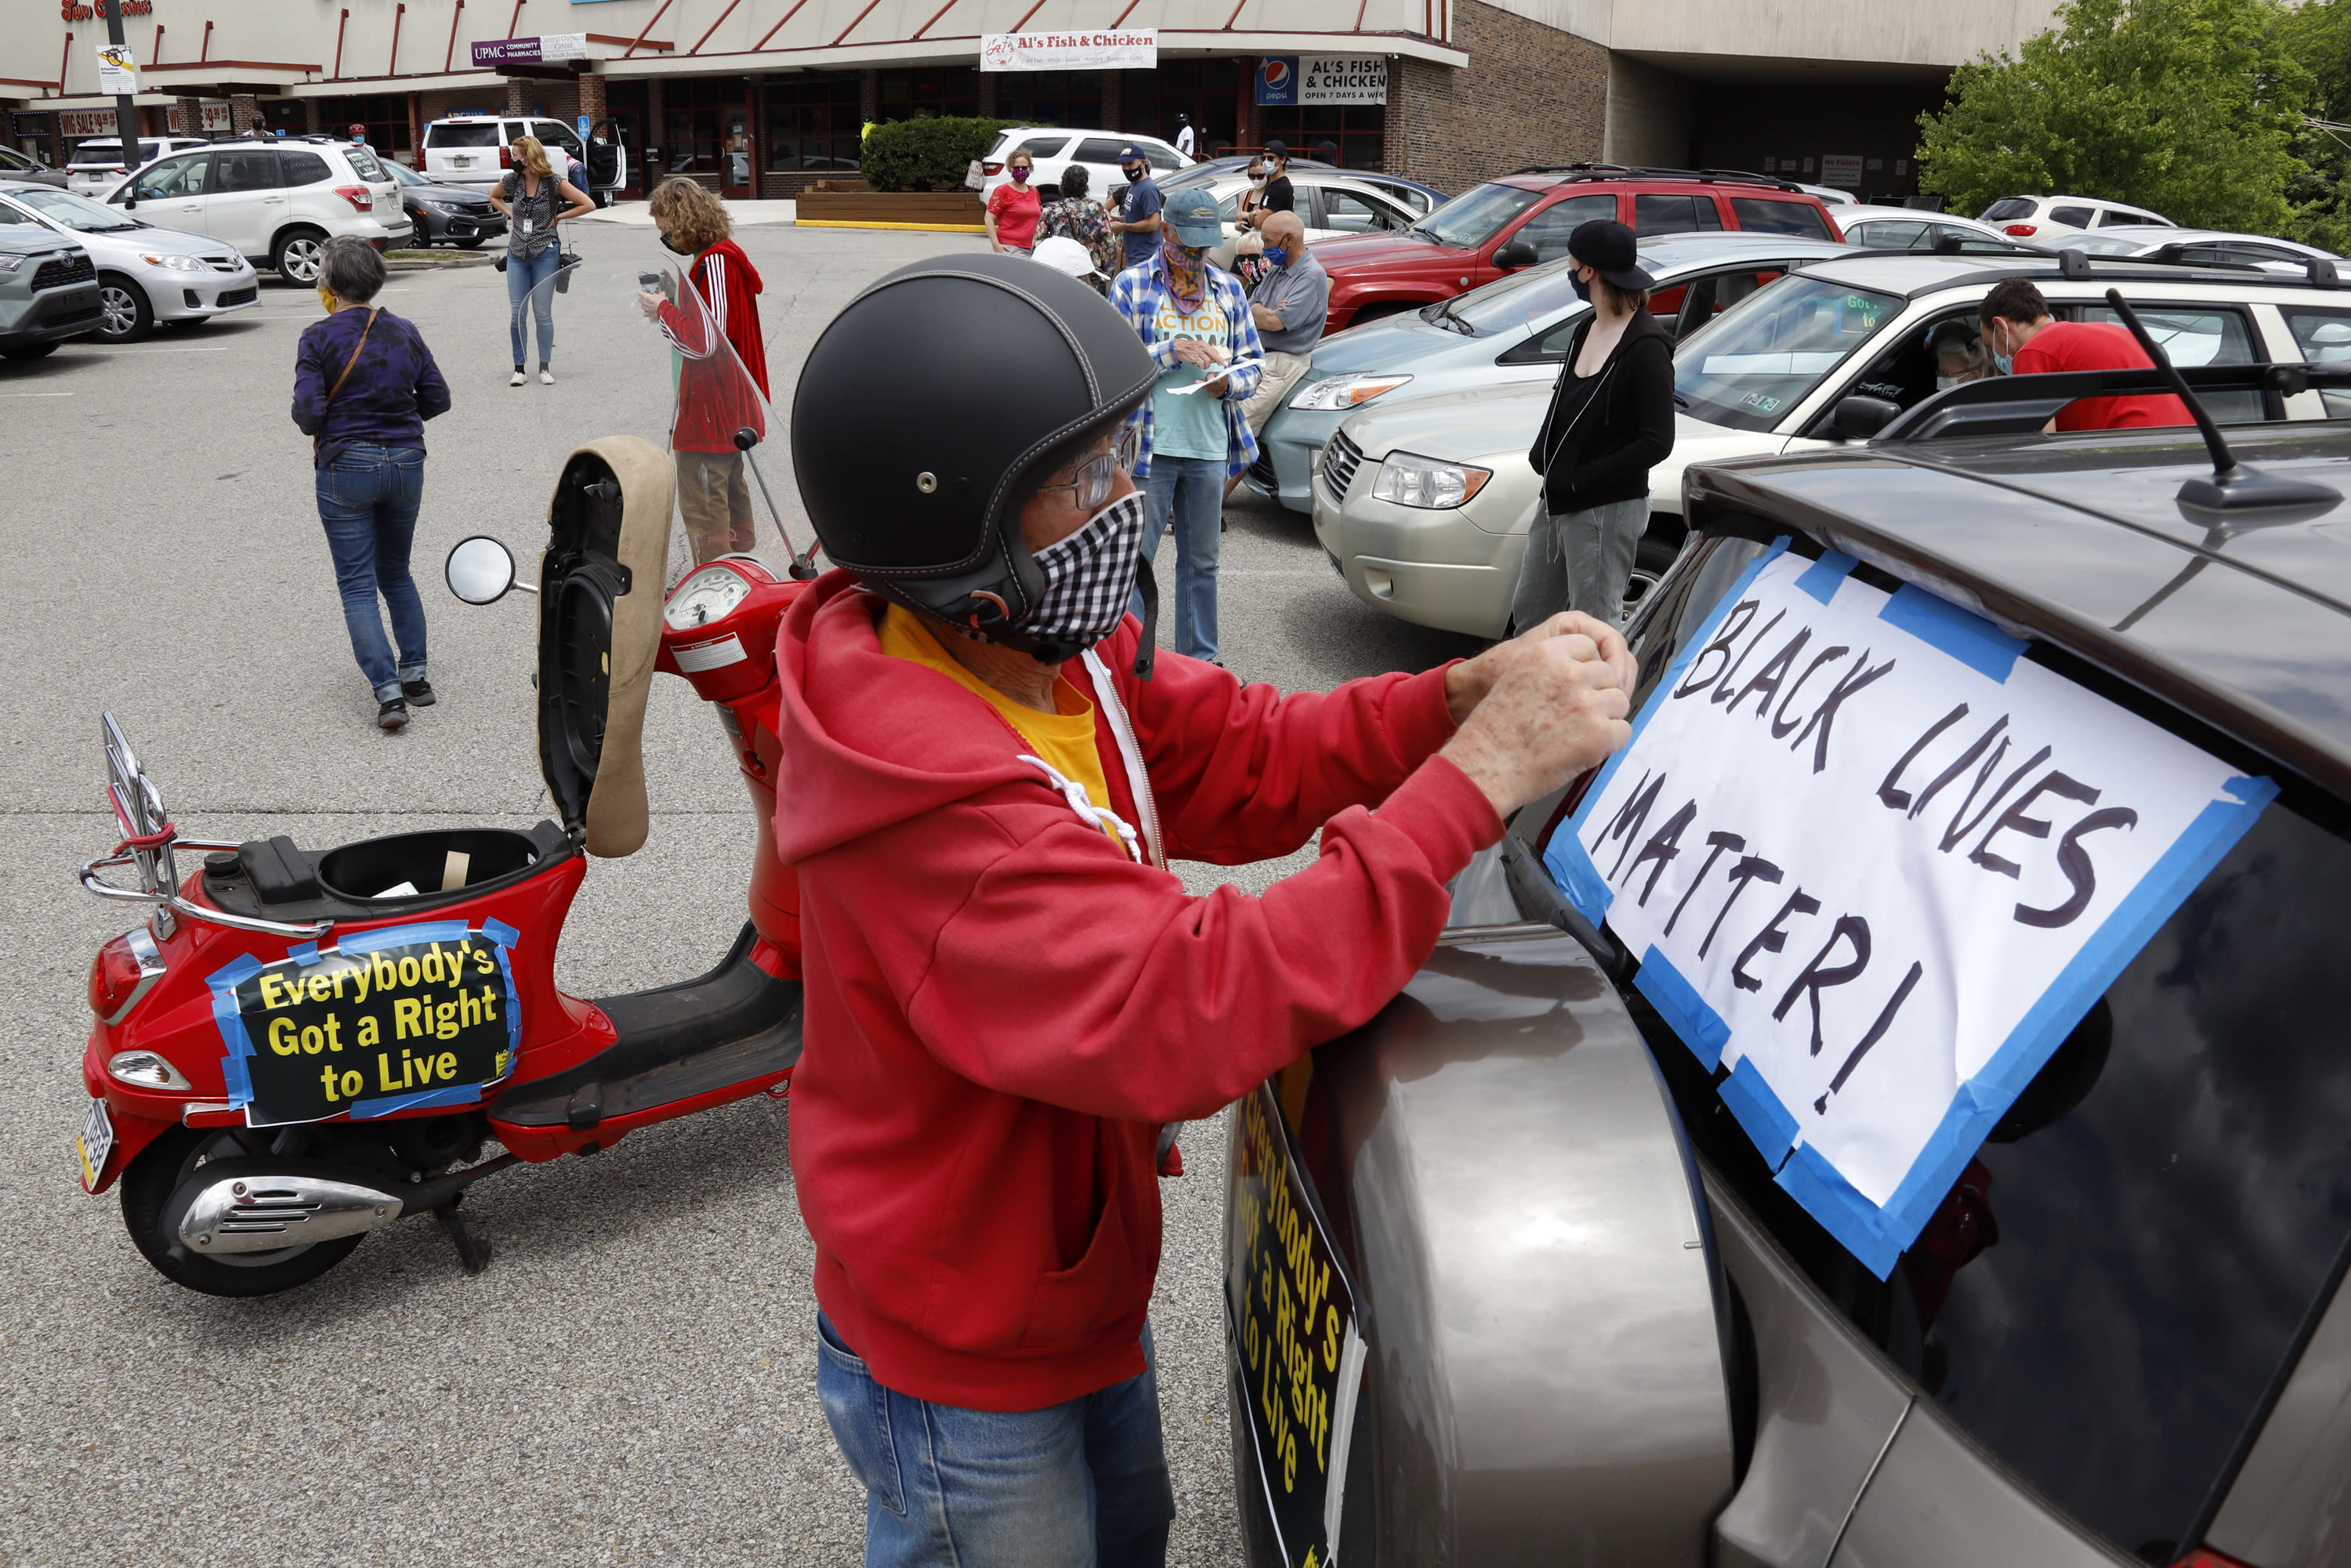 FILE - In this June 14, 2020, file photo, Mel Packer of Pittsburgh tapes a sign on a vehicle in the parking lot of a Shop & Save in downtown Pittsburgh in preparation for the Pennsylvania Poor People's Campaign: National Call for Moral Revival. A national coalition of labor unions, along with racial and social justice organizations, will stage a mass walkout from work July 20, as part of an ongoing reckoning on systemic racism and police brutality in the U.S. (AP Photo/Gene J. Puskar, File)